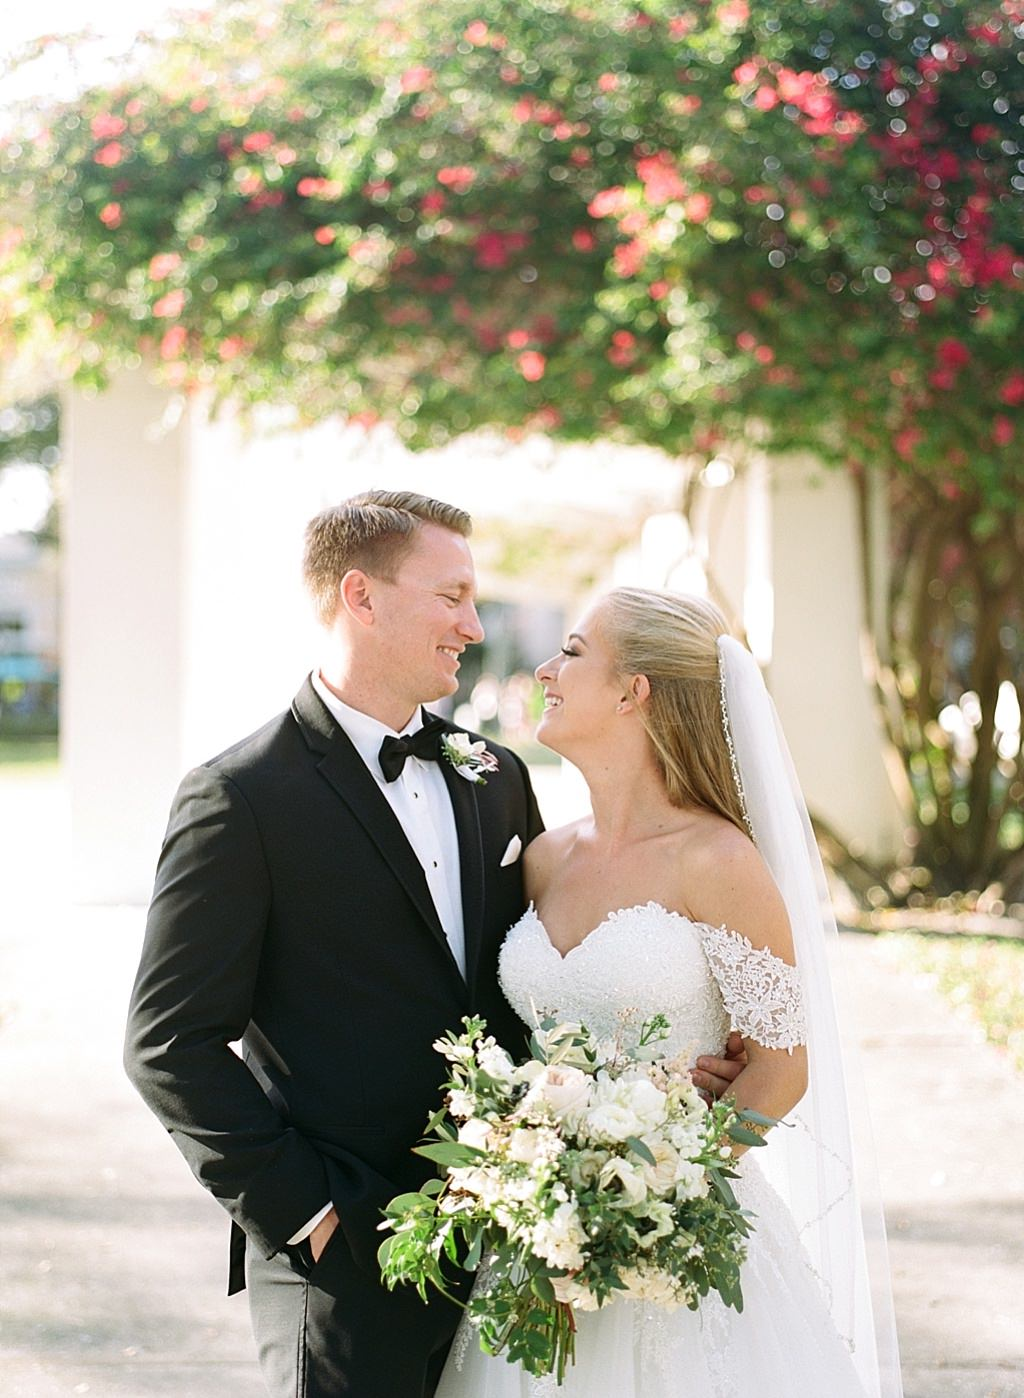 Tampa Elegant Bride in Sweetheart Off the Shoulder Lace Ballgown Wedding Dress Holding Garden Inspired White Roses, Anemone, Greenery Floral Bridal Bouquet and Groom in Black Tuxedo Wedding Portrait